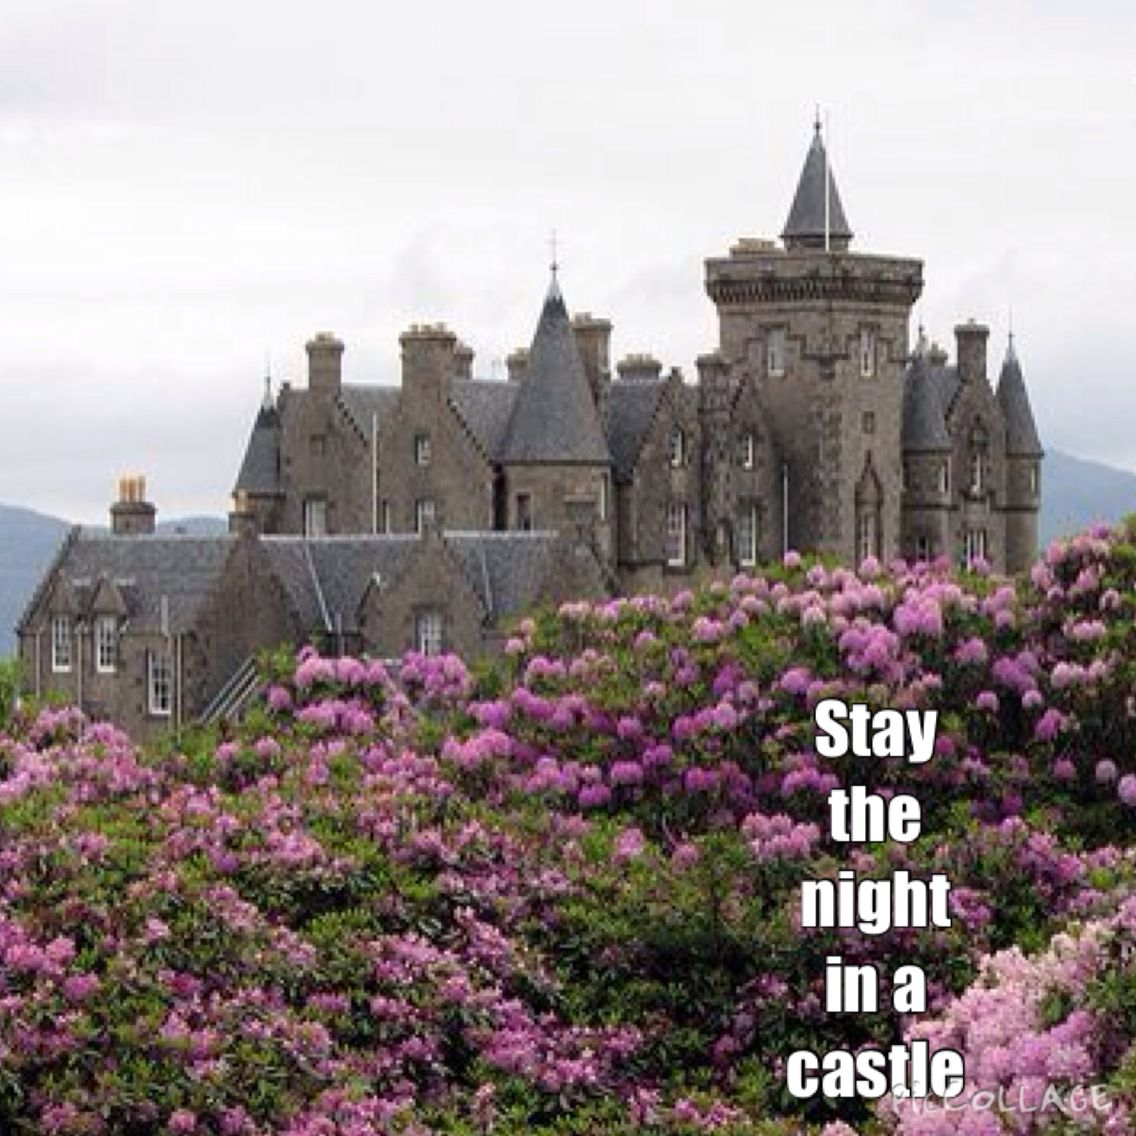 Stayed the night in this castle. Glengorm Castle at the Isle Of Mull, Scotland